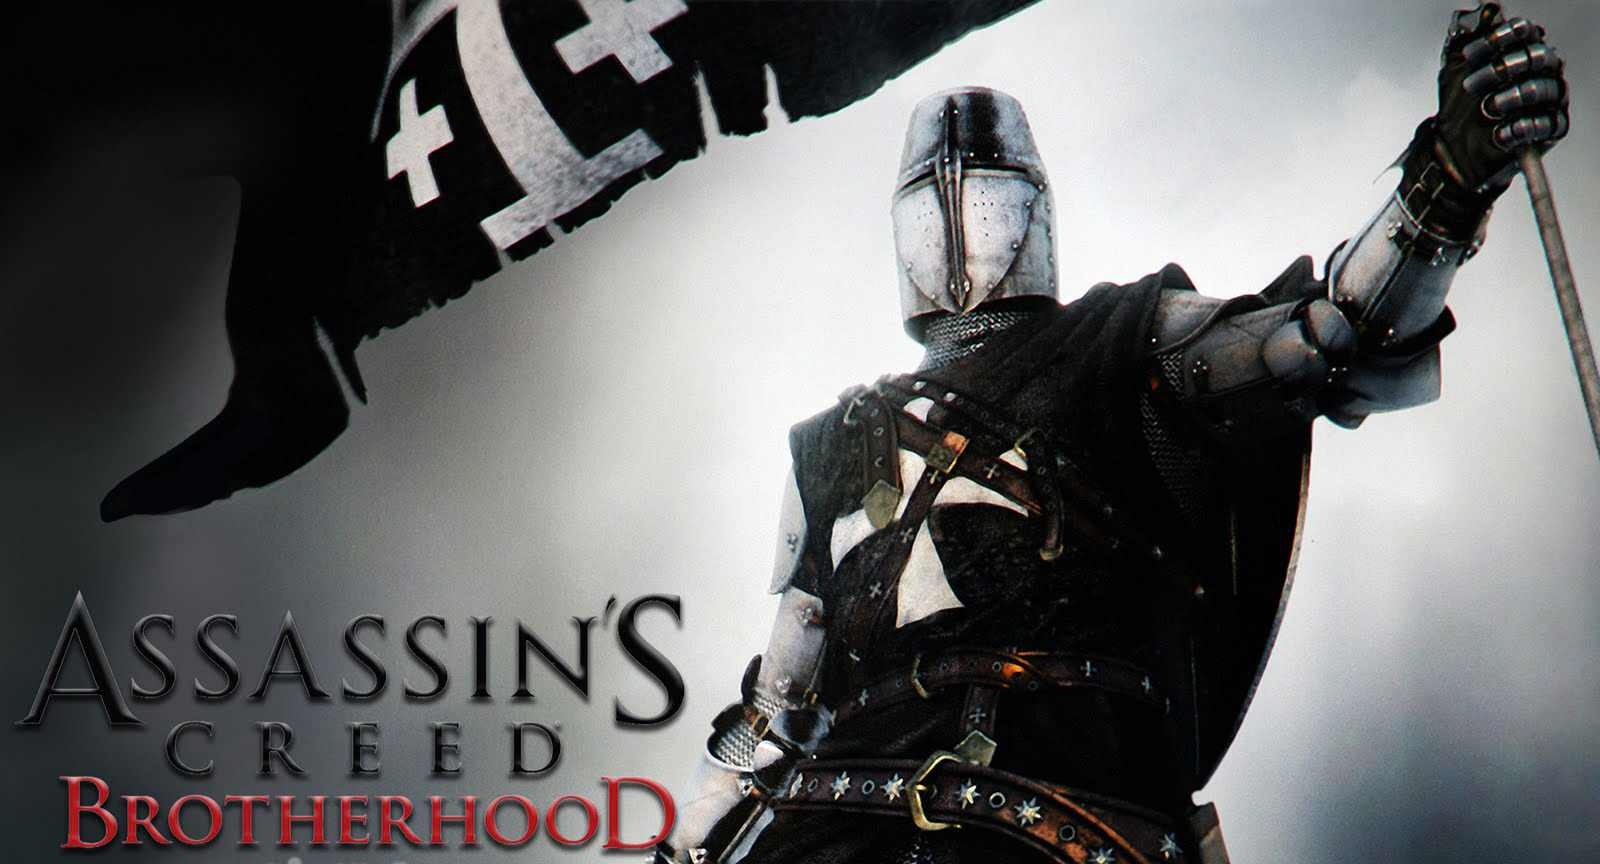 http://3.bp.blogspot.com/_sX3tCcZFGFE/TSaylm7Of1I/AAAAAAAAASM/zry7hTd2ps8/s1600/assassins-creed-brotherhood-2.jpg